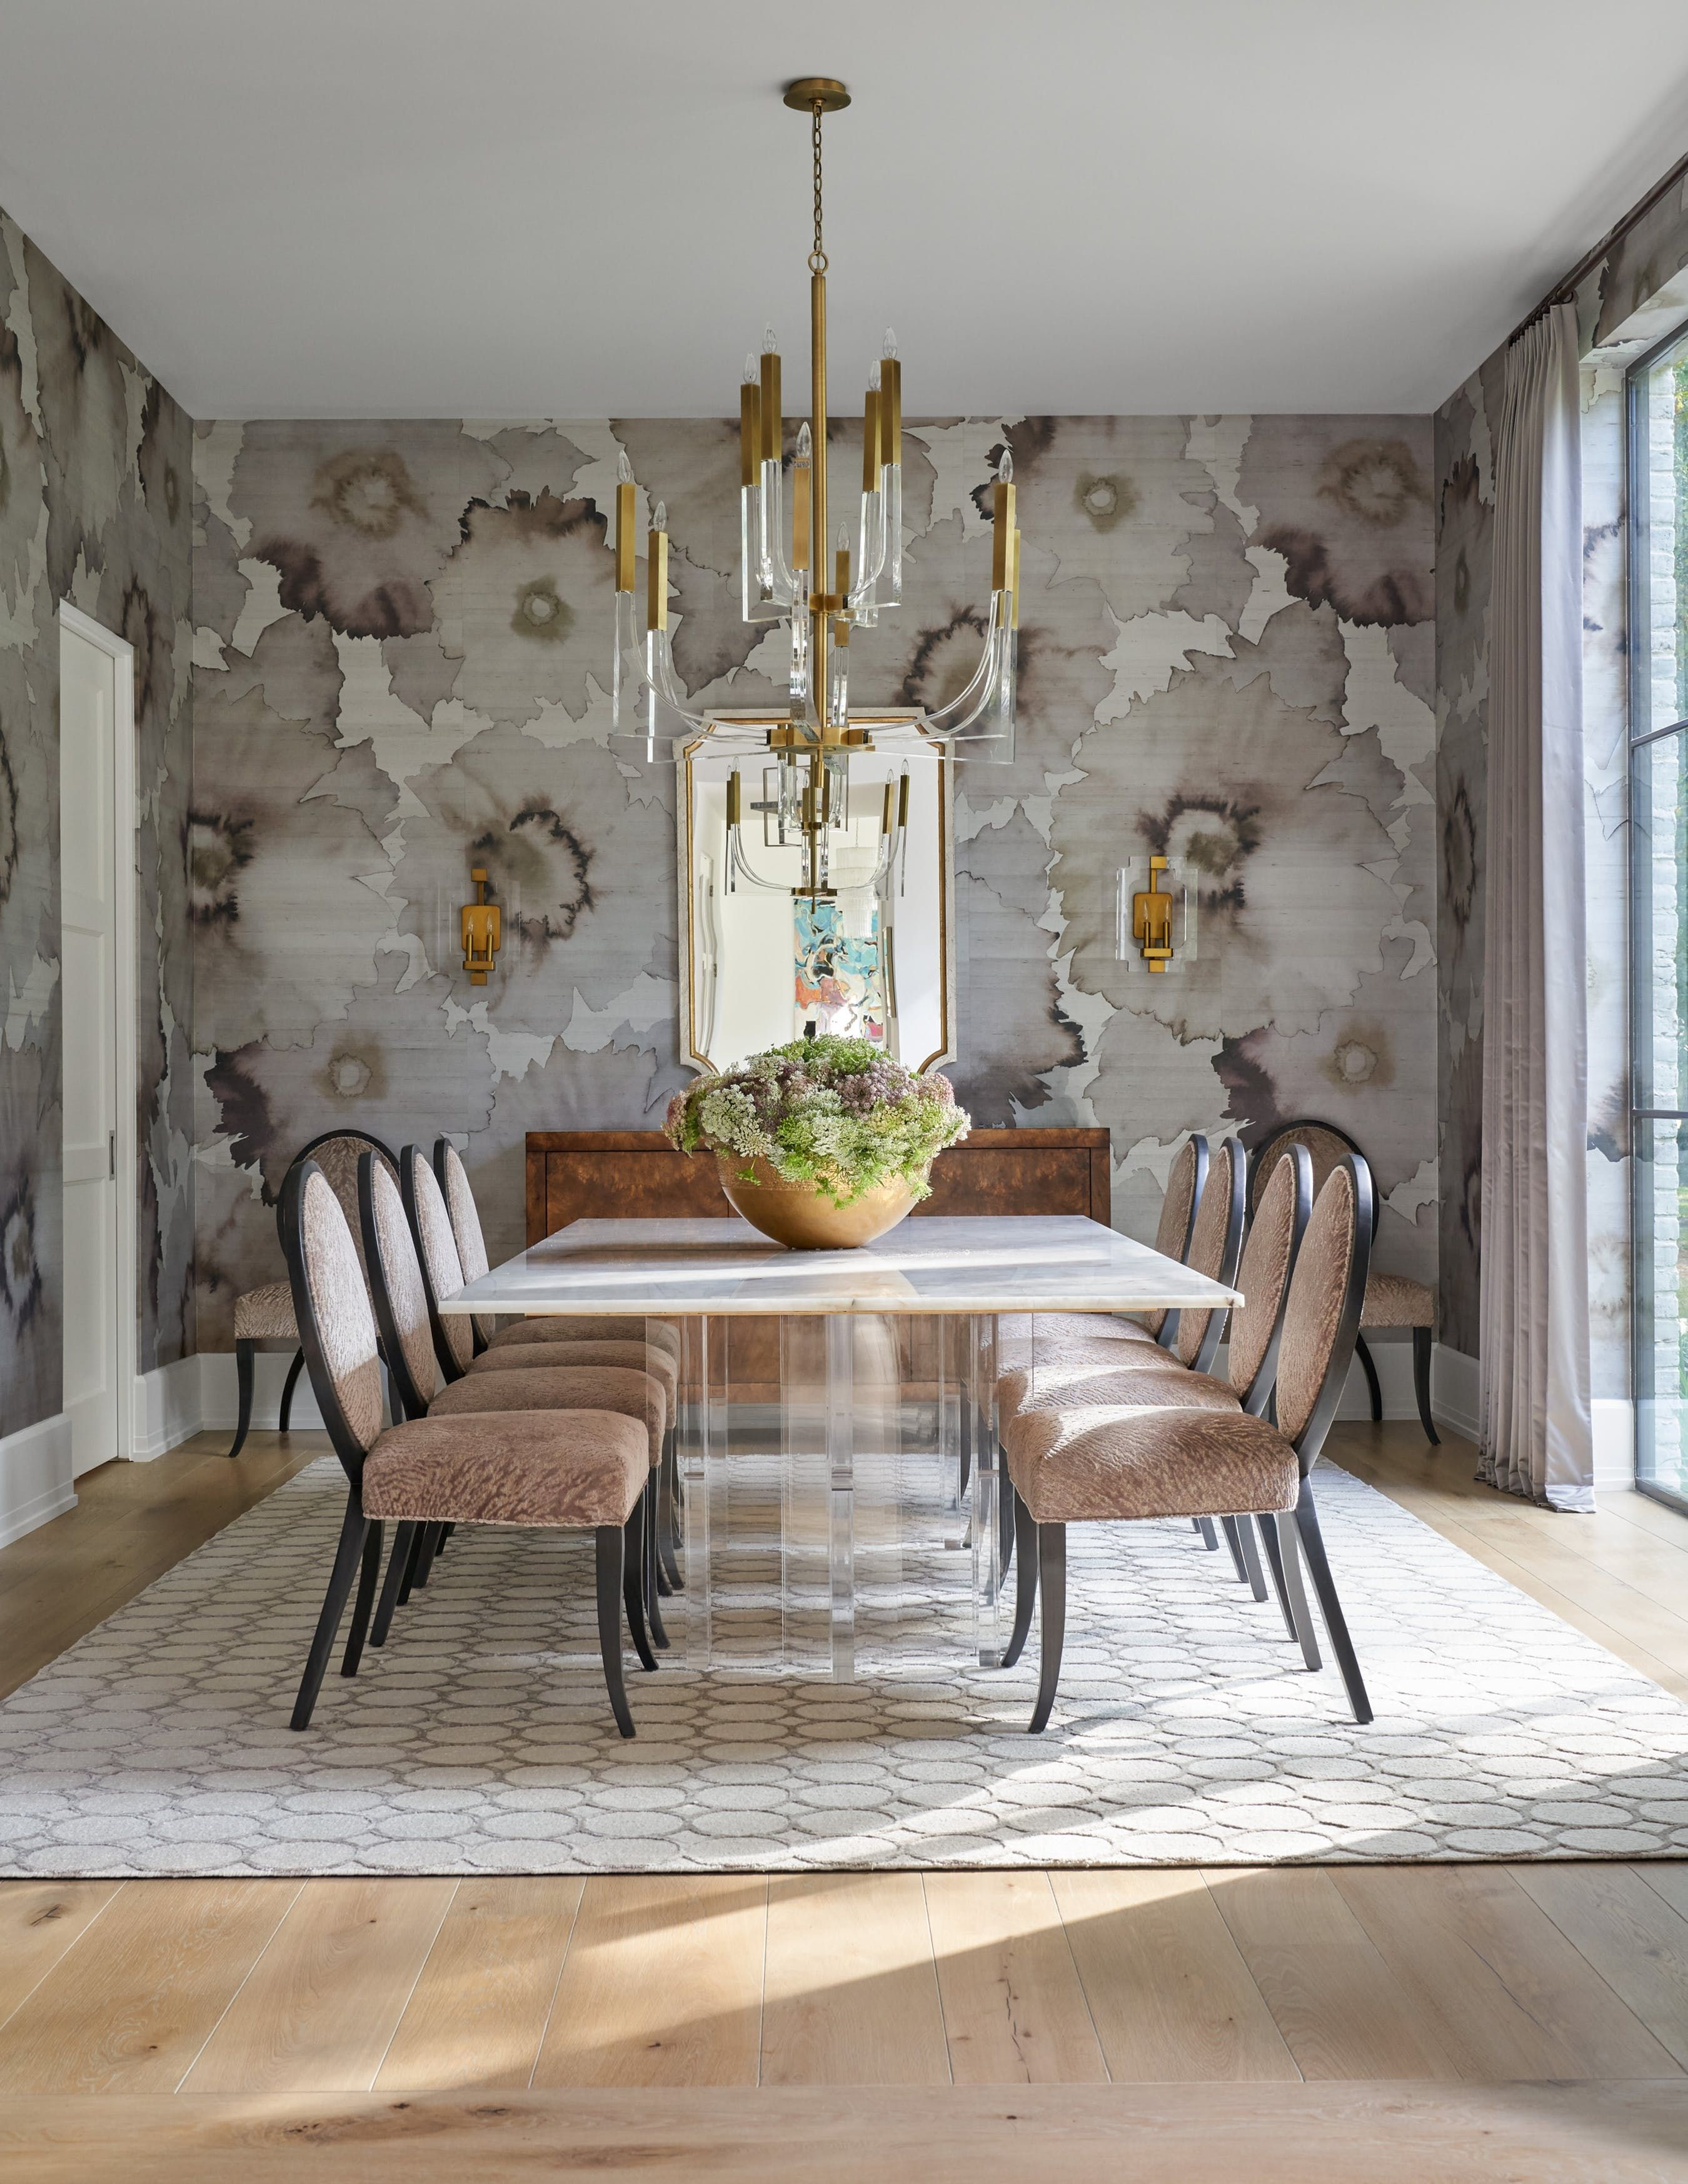 Dining Rooms With Fl Wallpaper, Wallpaper For Dining Room Wall